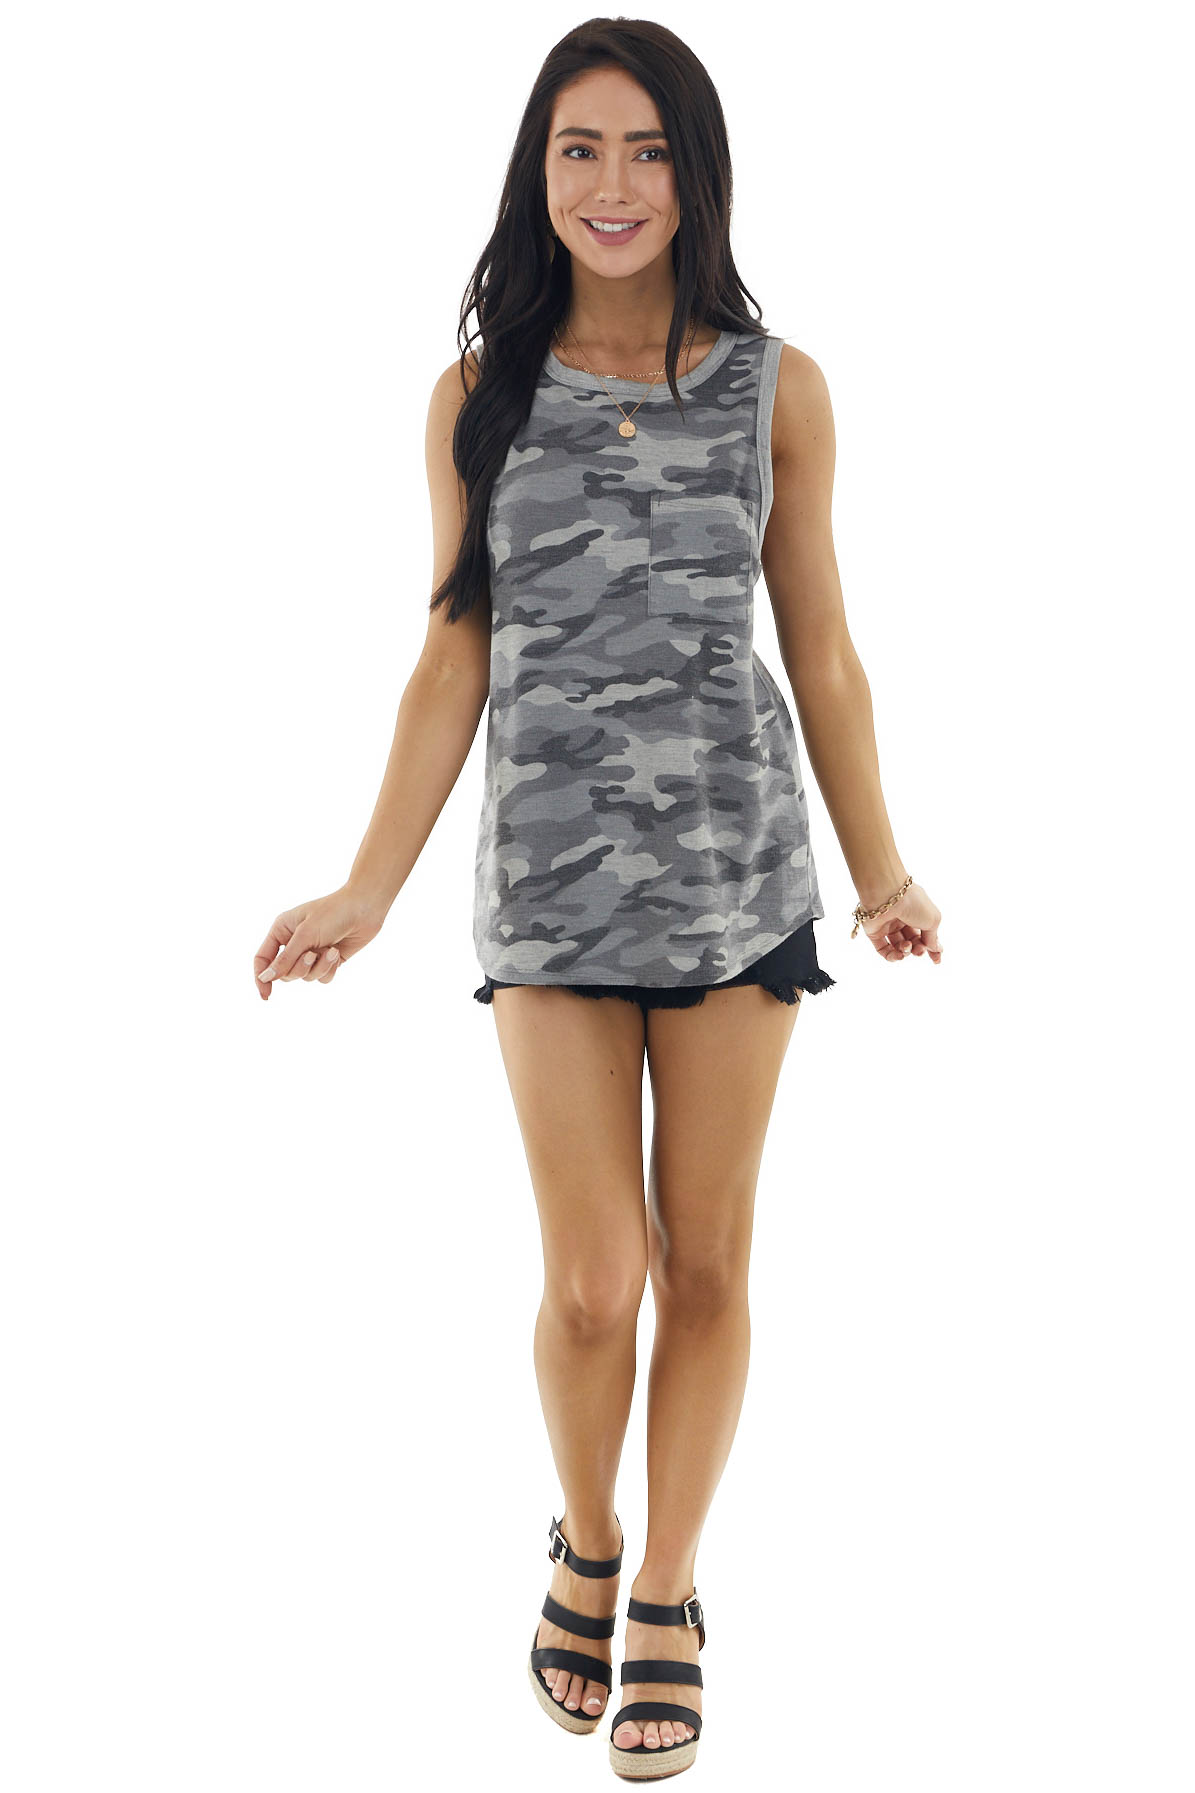 Stone Grey Camo Print Sleeveless Knit Top with Chest Pocket